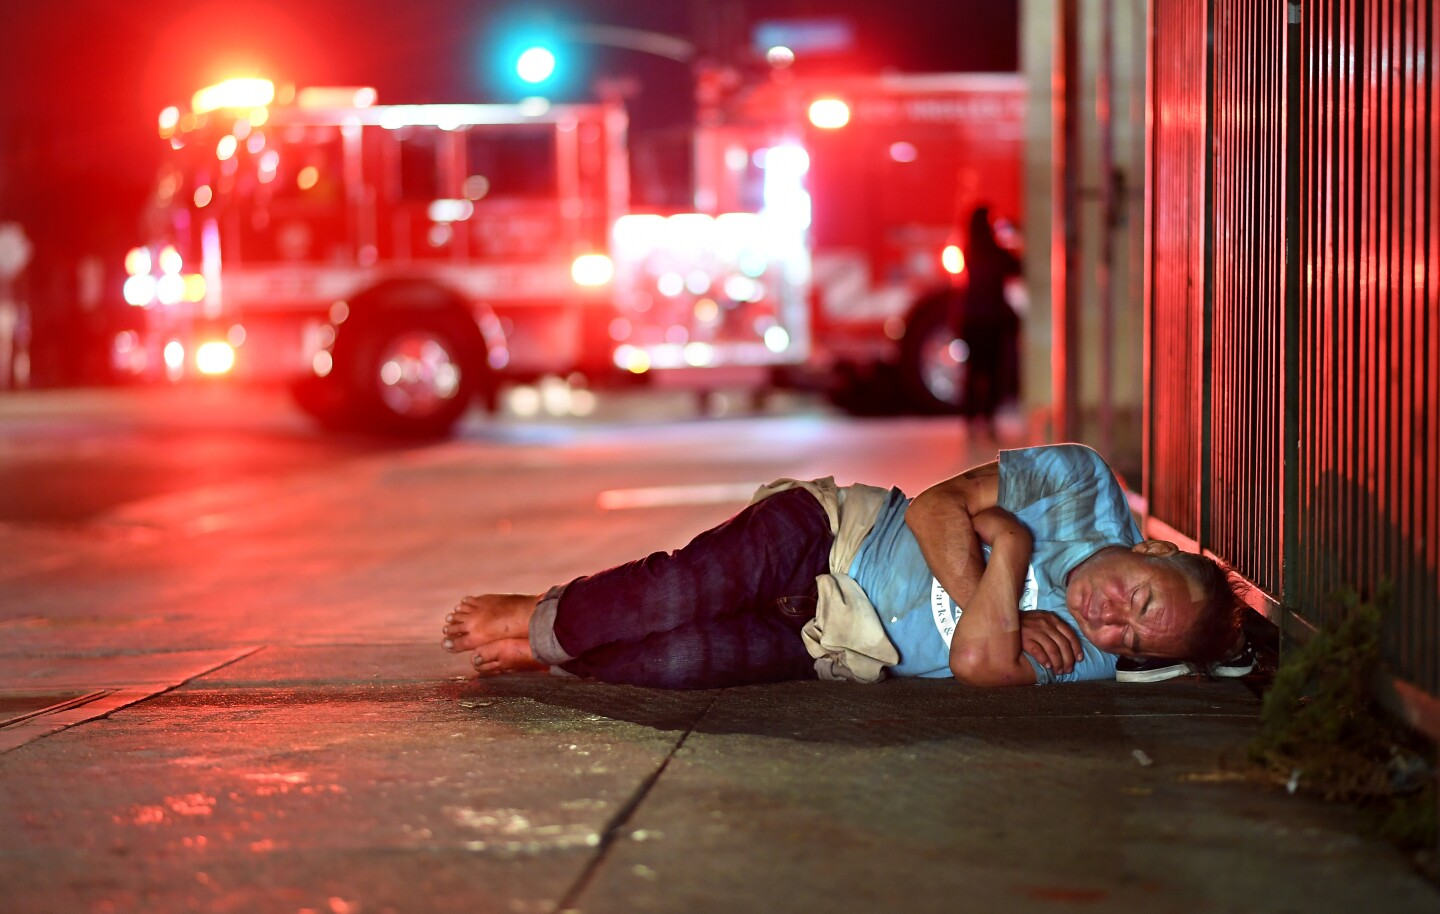 24 hours with skid row's firefighters - Los Angeles Times